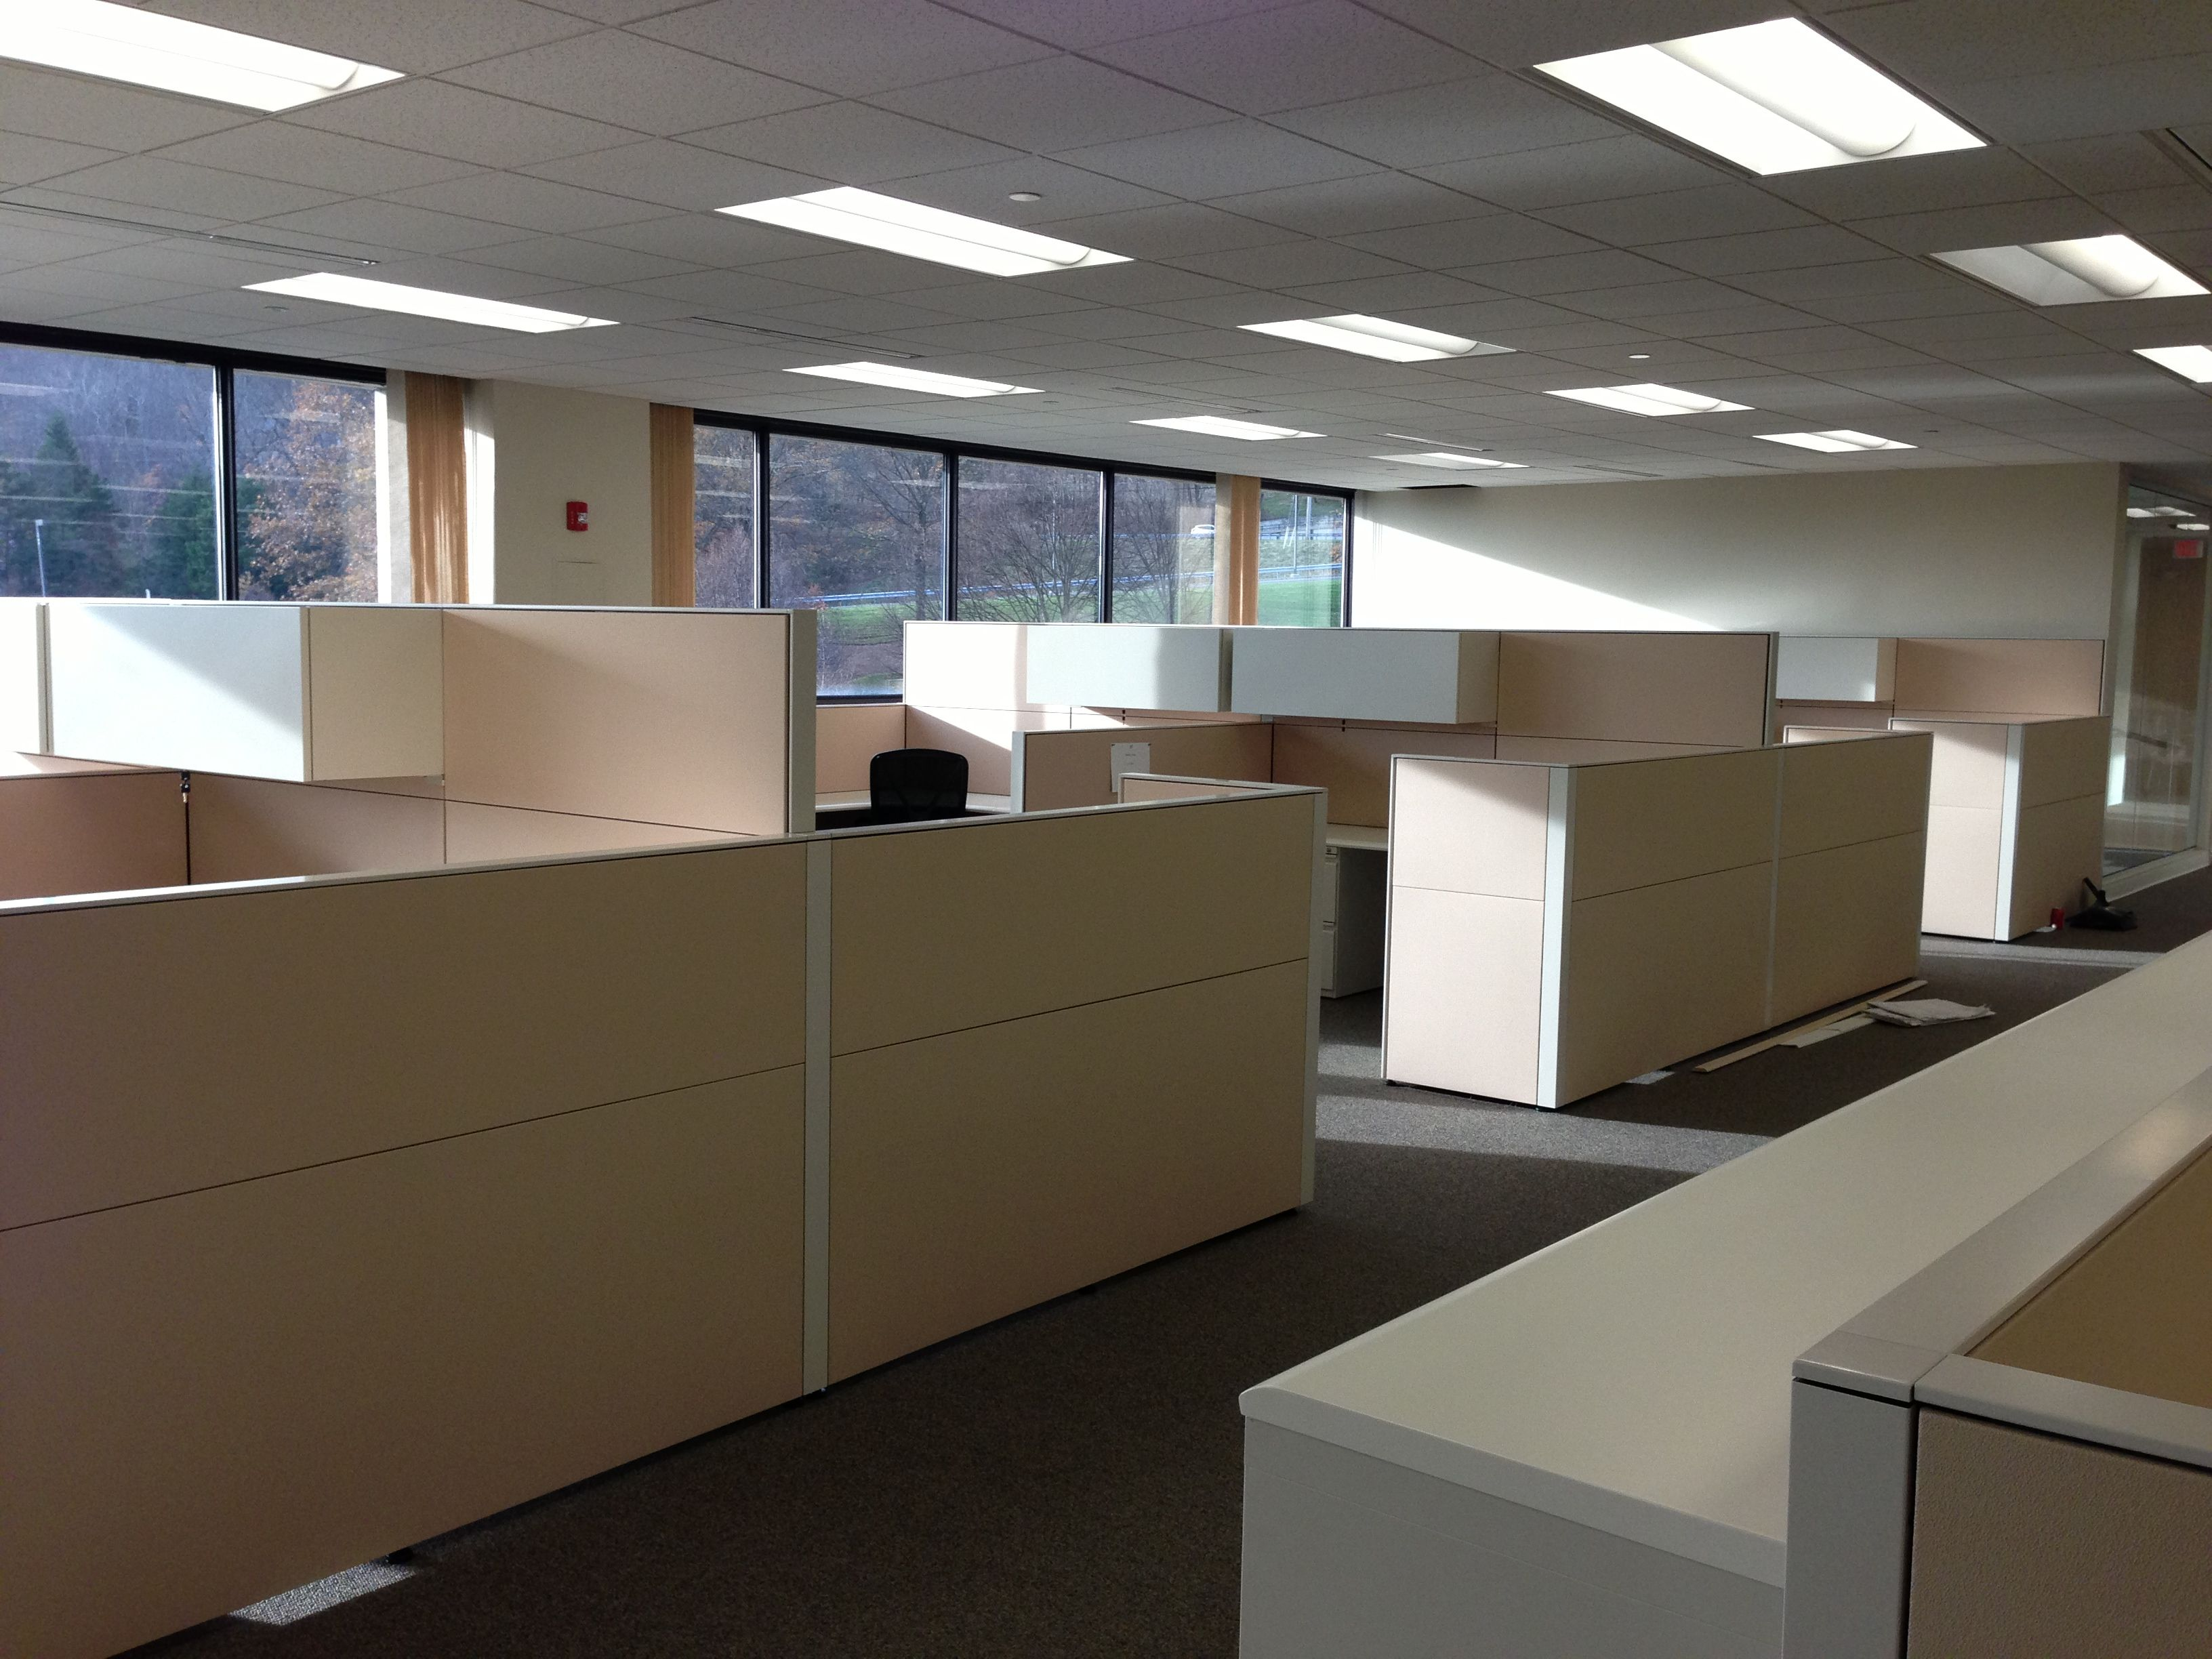 brand new office cubicles in morristown nj new projects office rh pinterest co uk